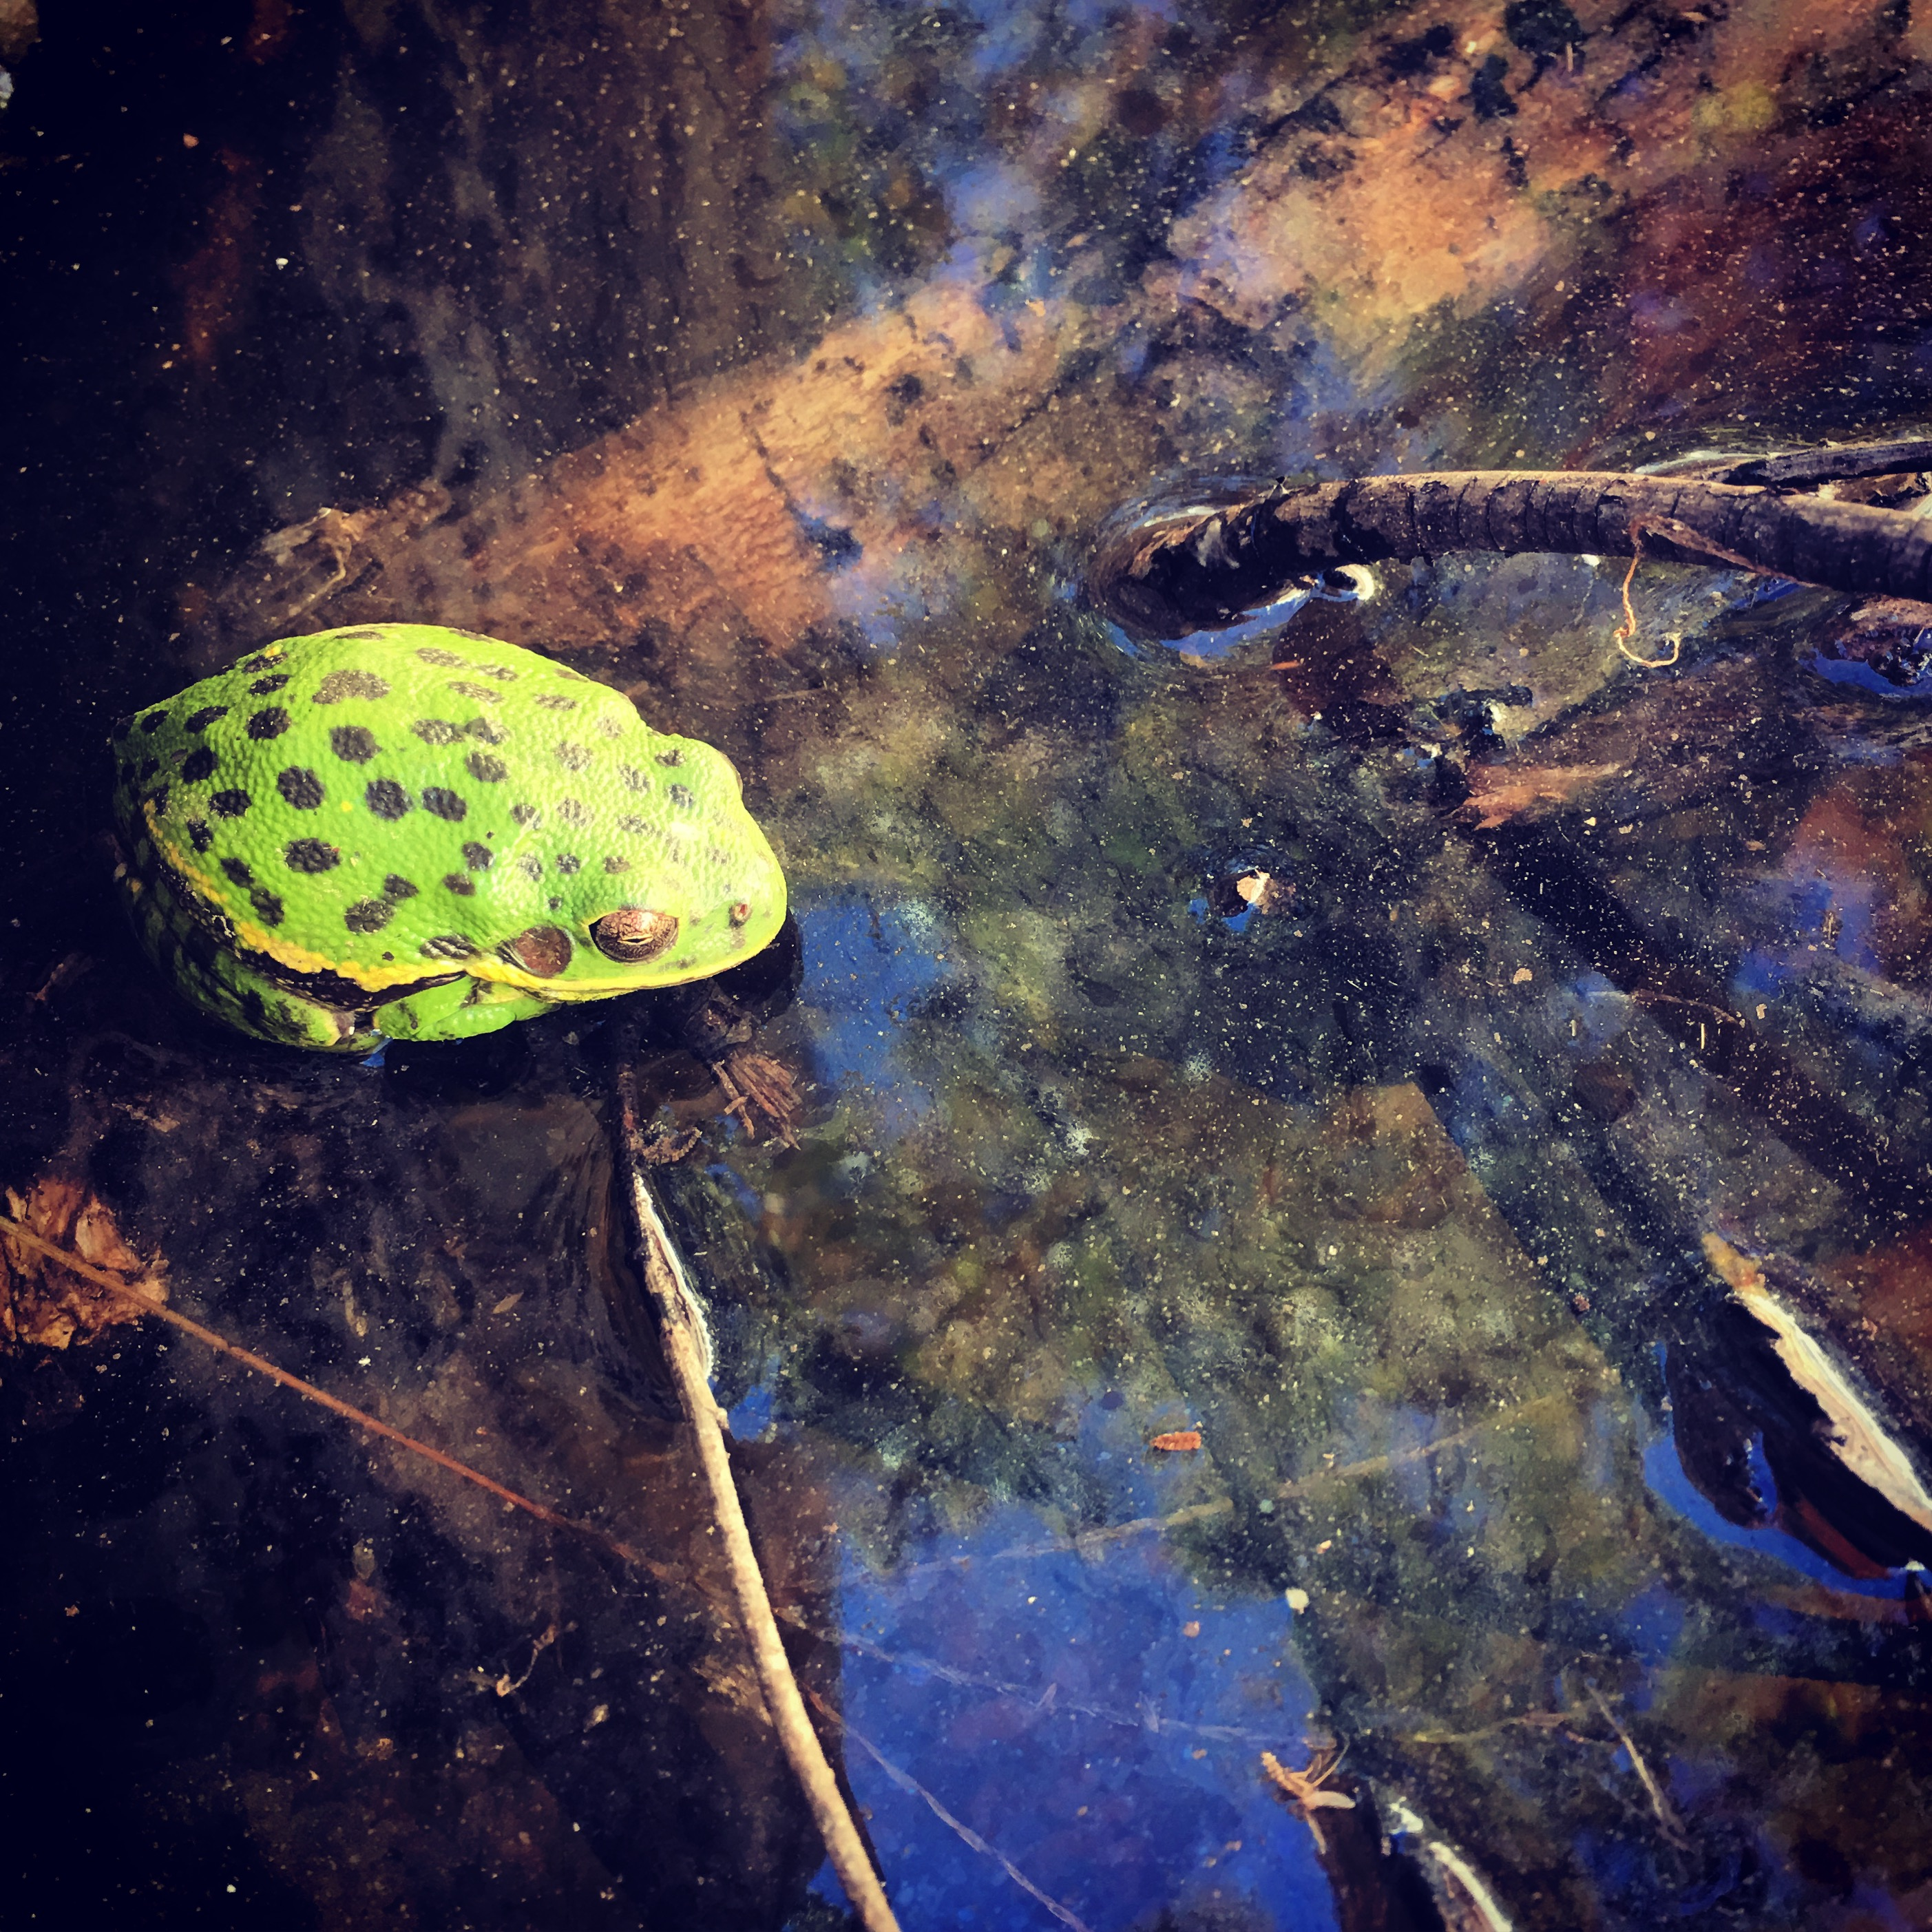 Dreaming Frog